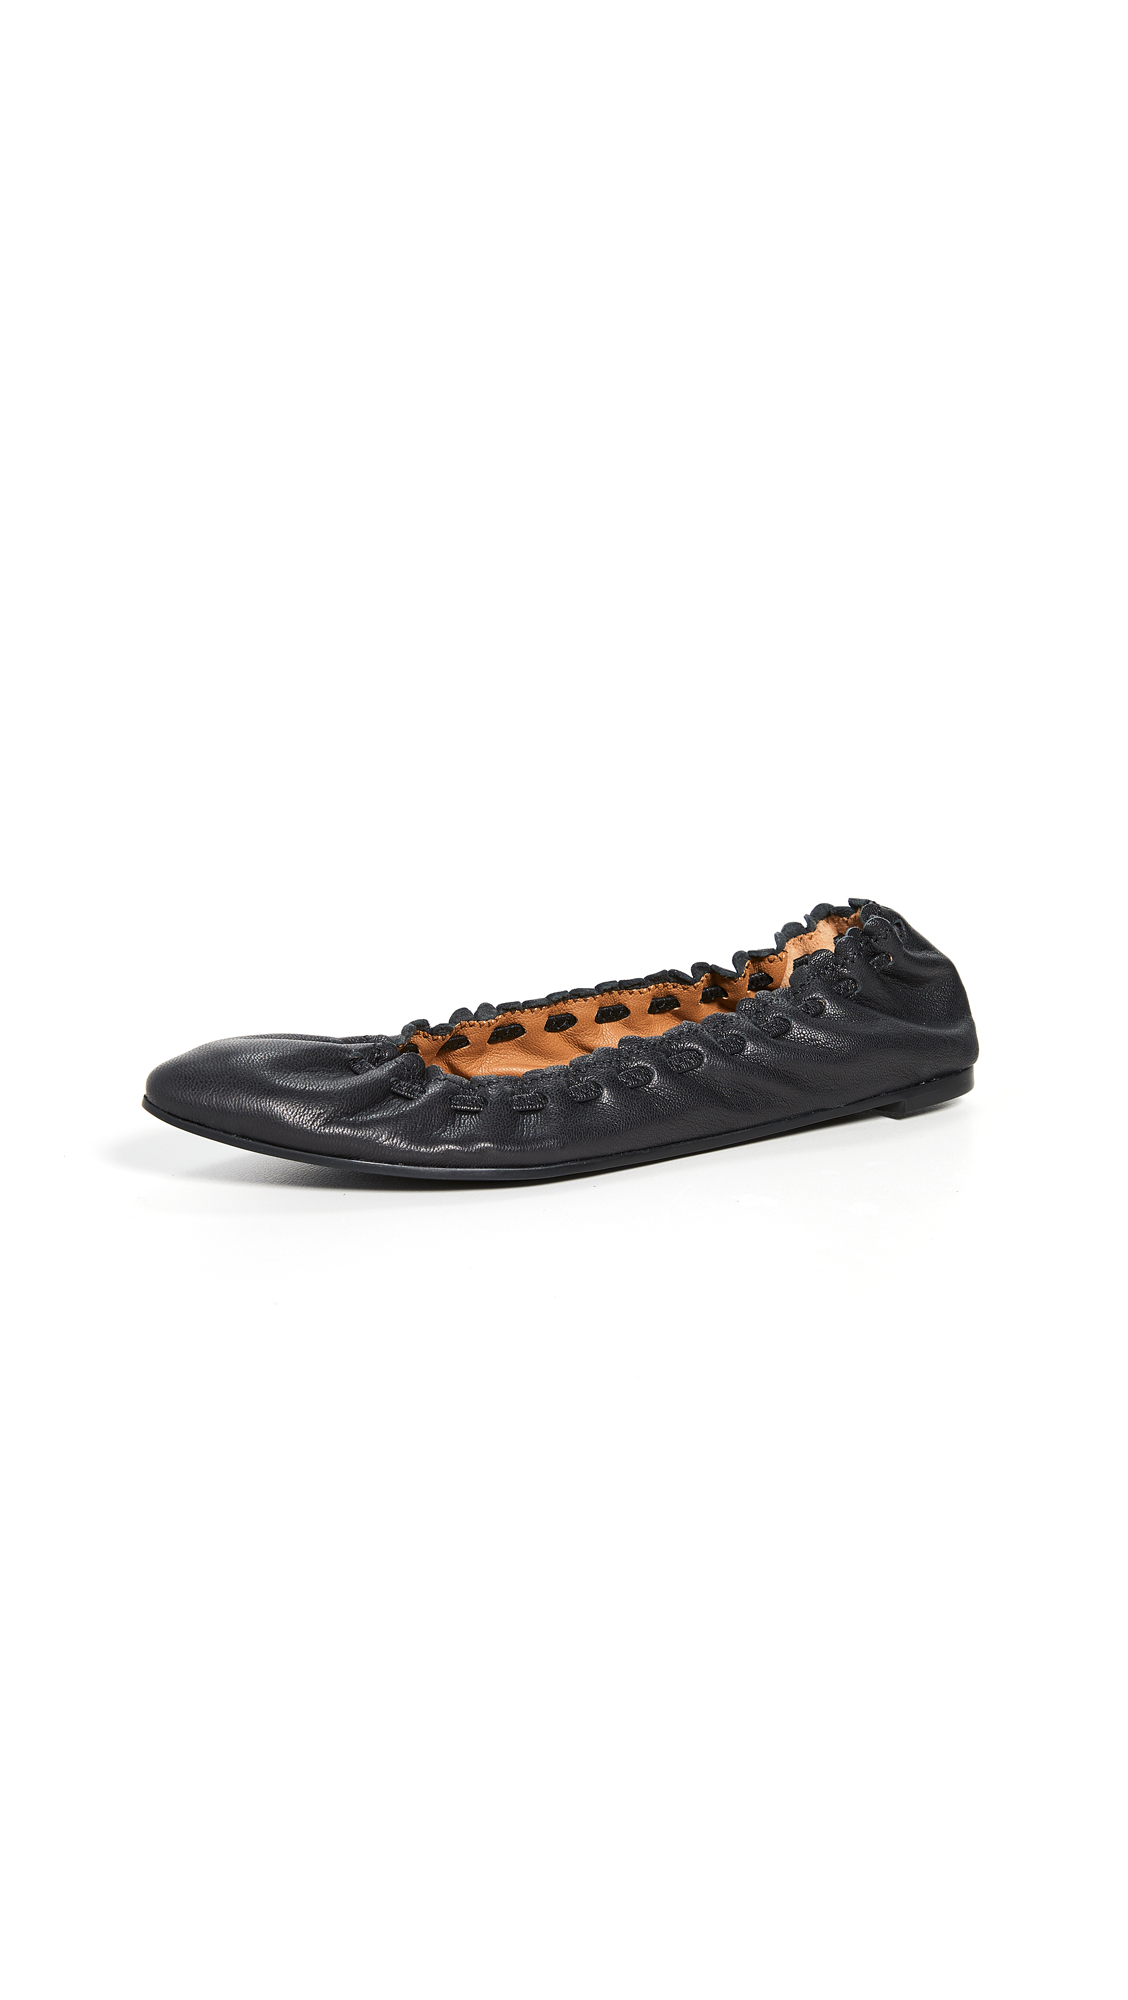 Buy See by Chloe Jane Point Ballet Flats online, shop See by Chloe